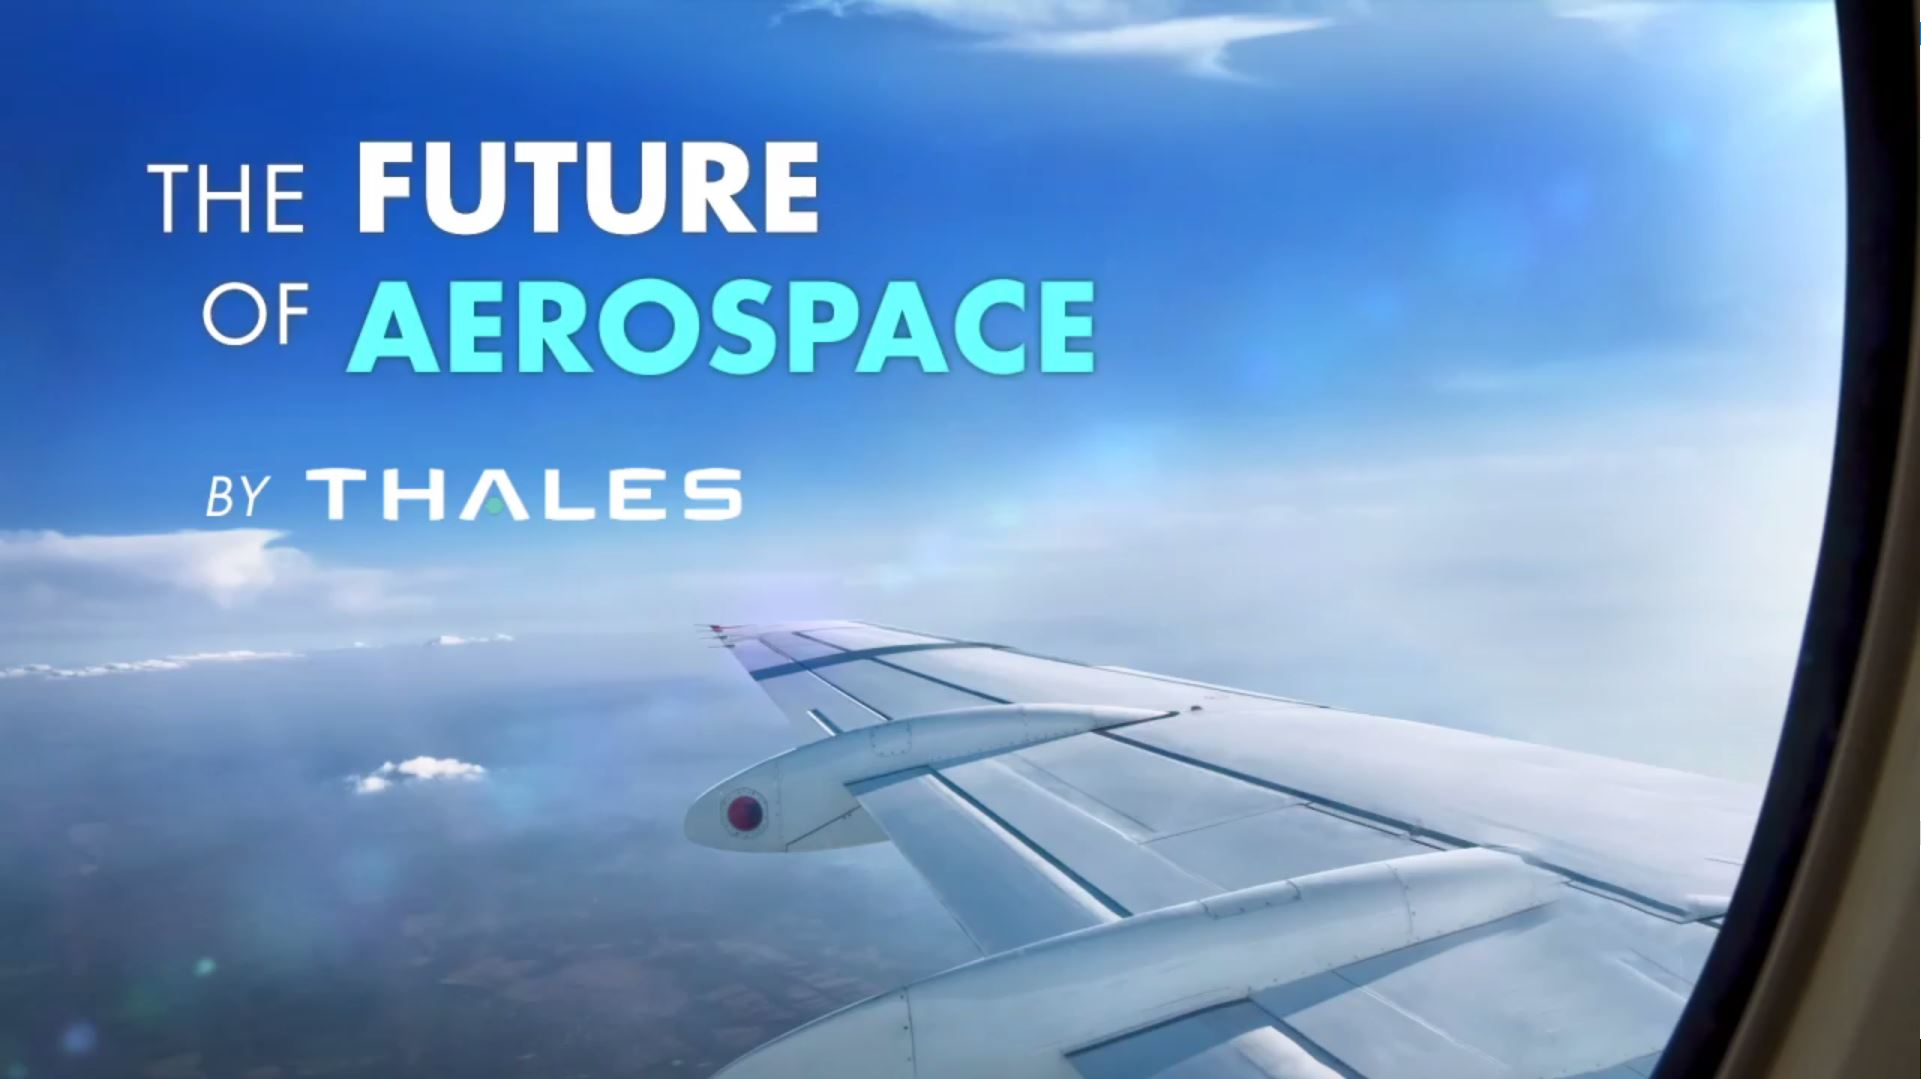 The Future of Aerospace